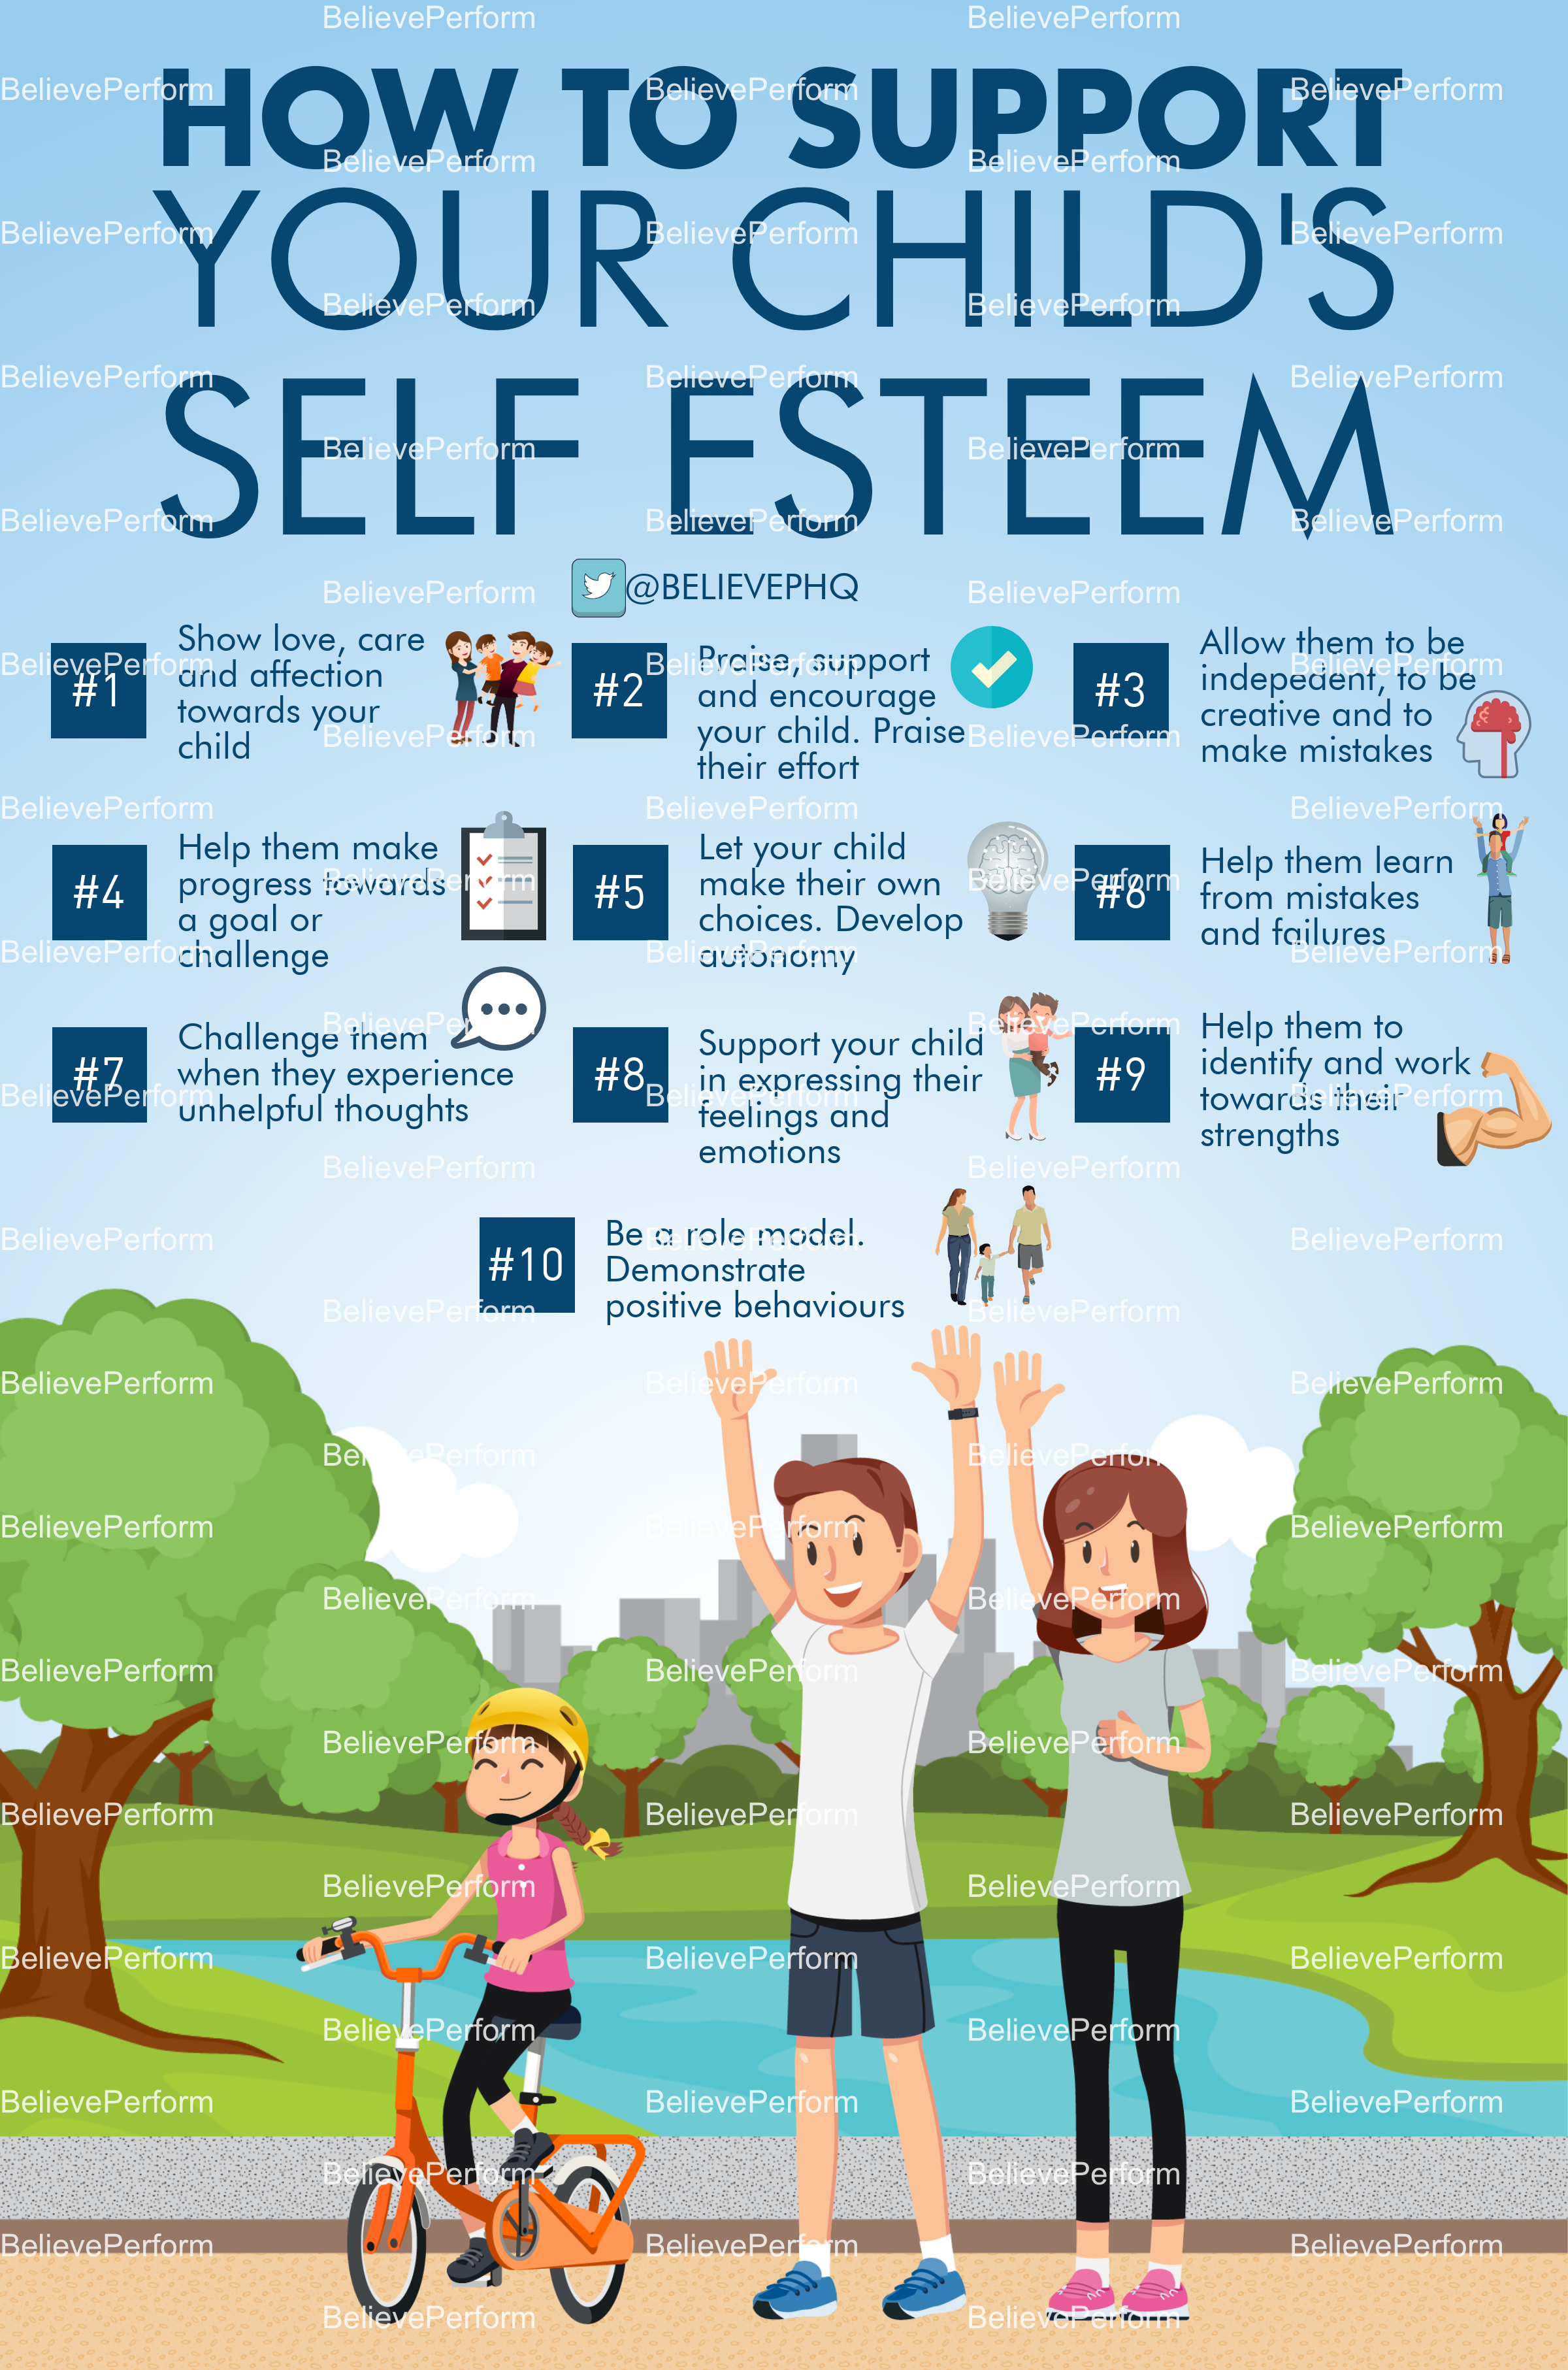 How to support your child's self esteem